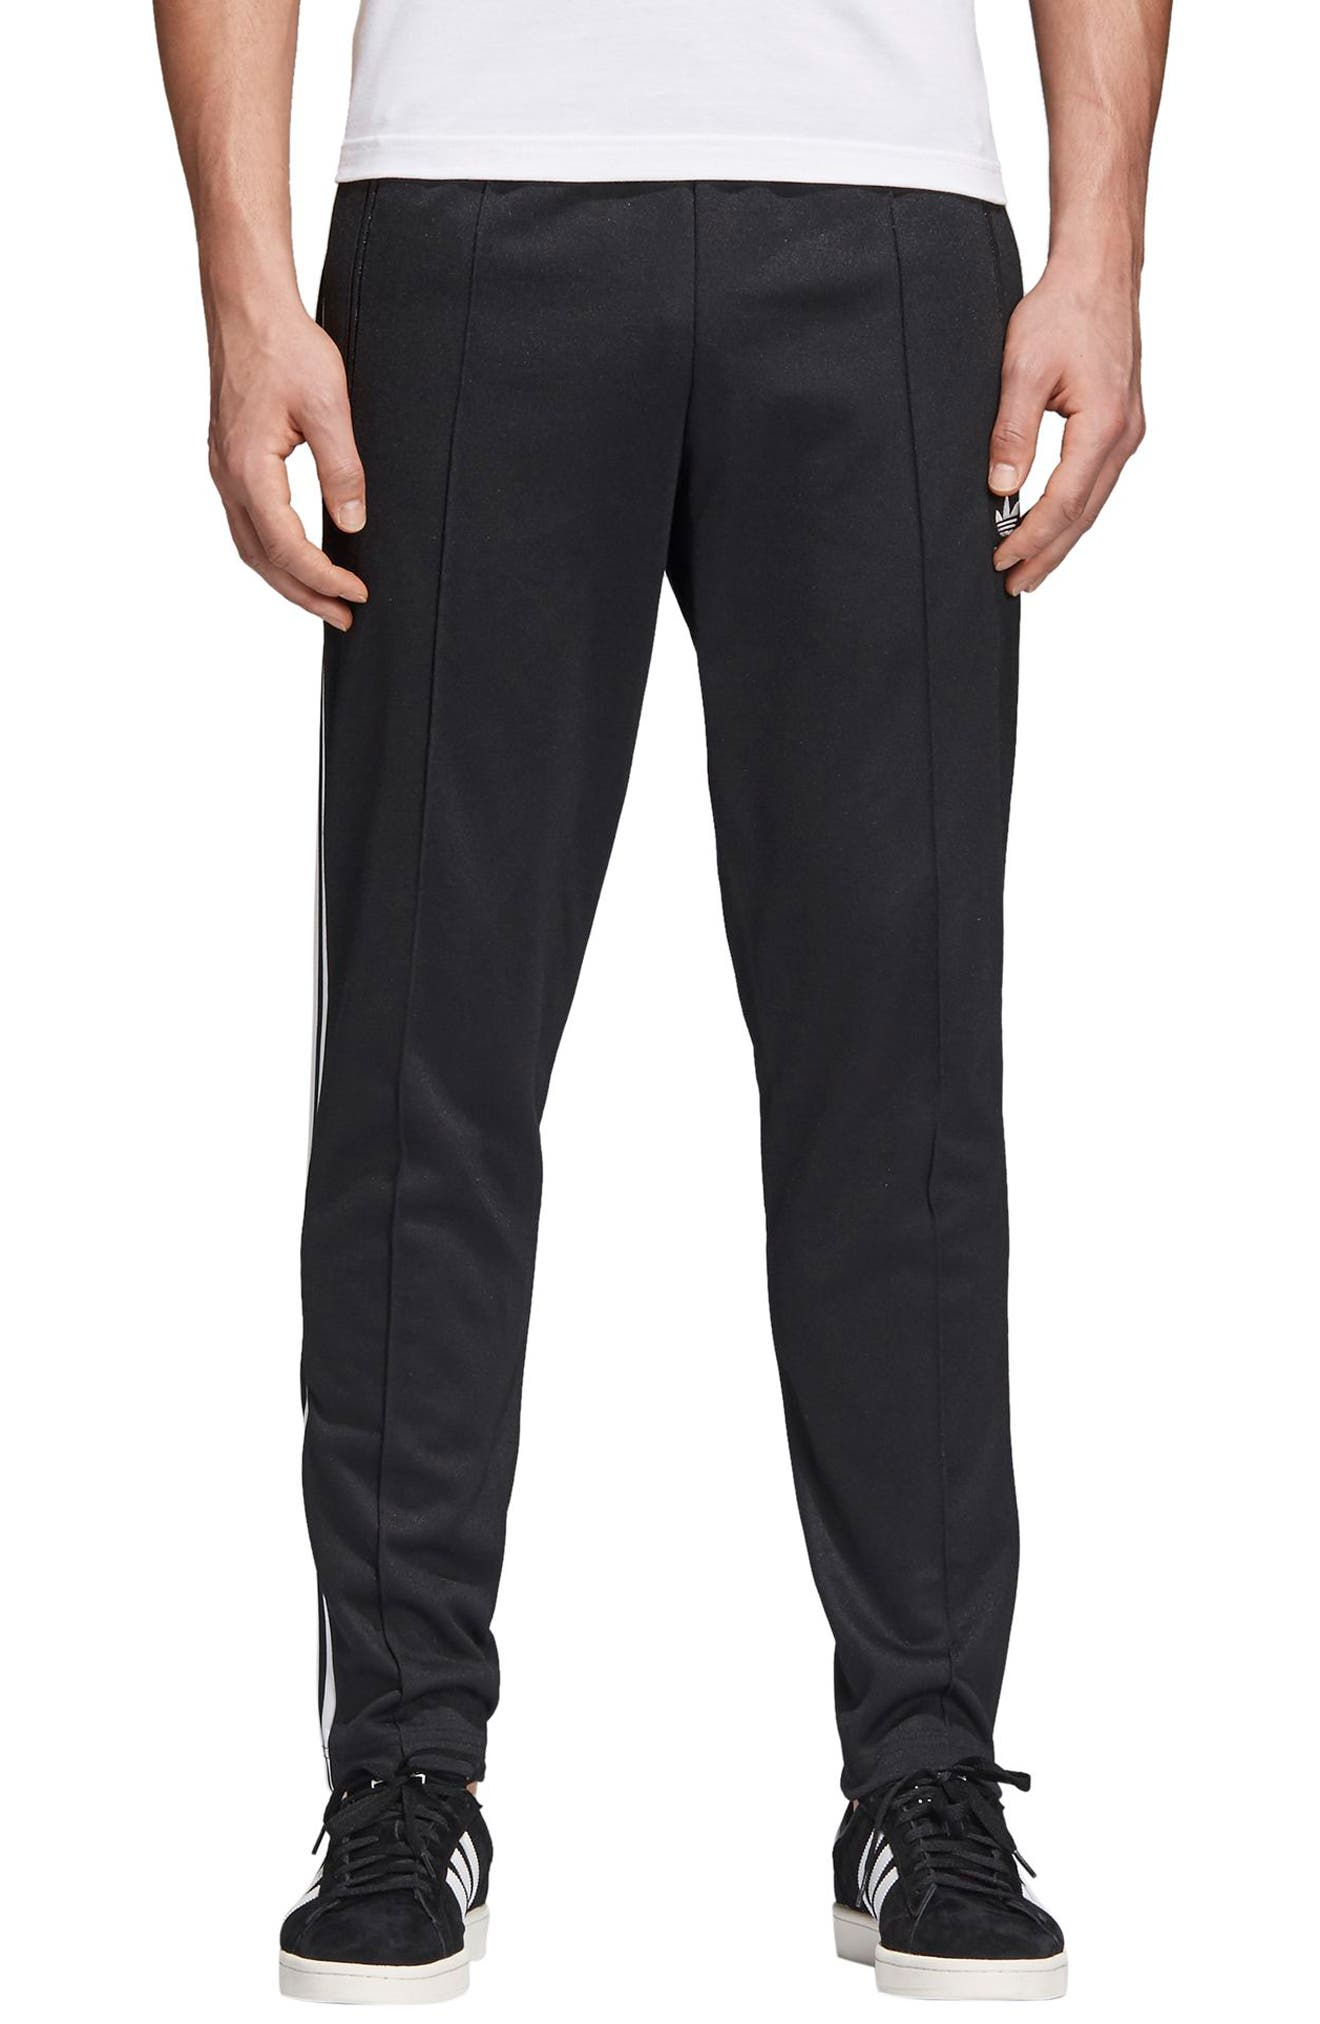 Beckenbauer Track Pants,                         Main,                         color, BLACK/ WHITE